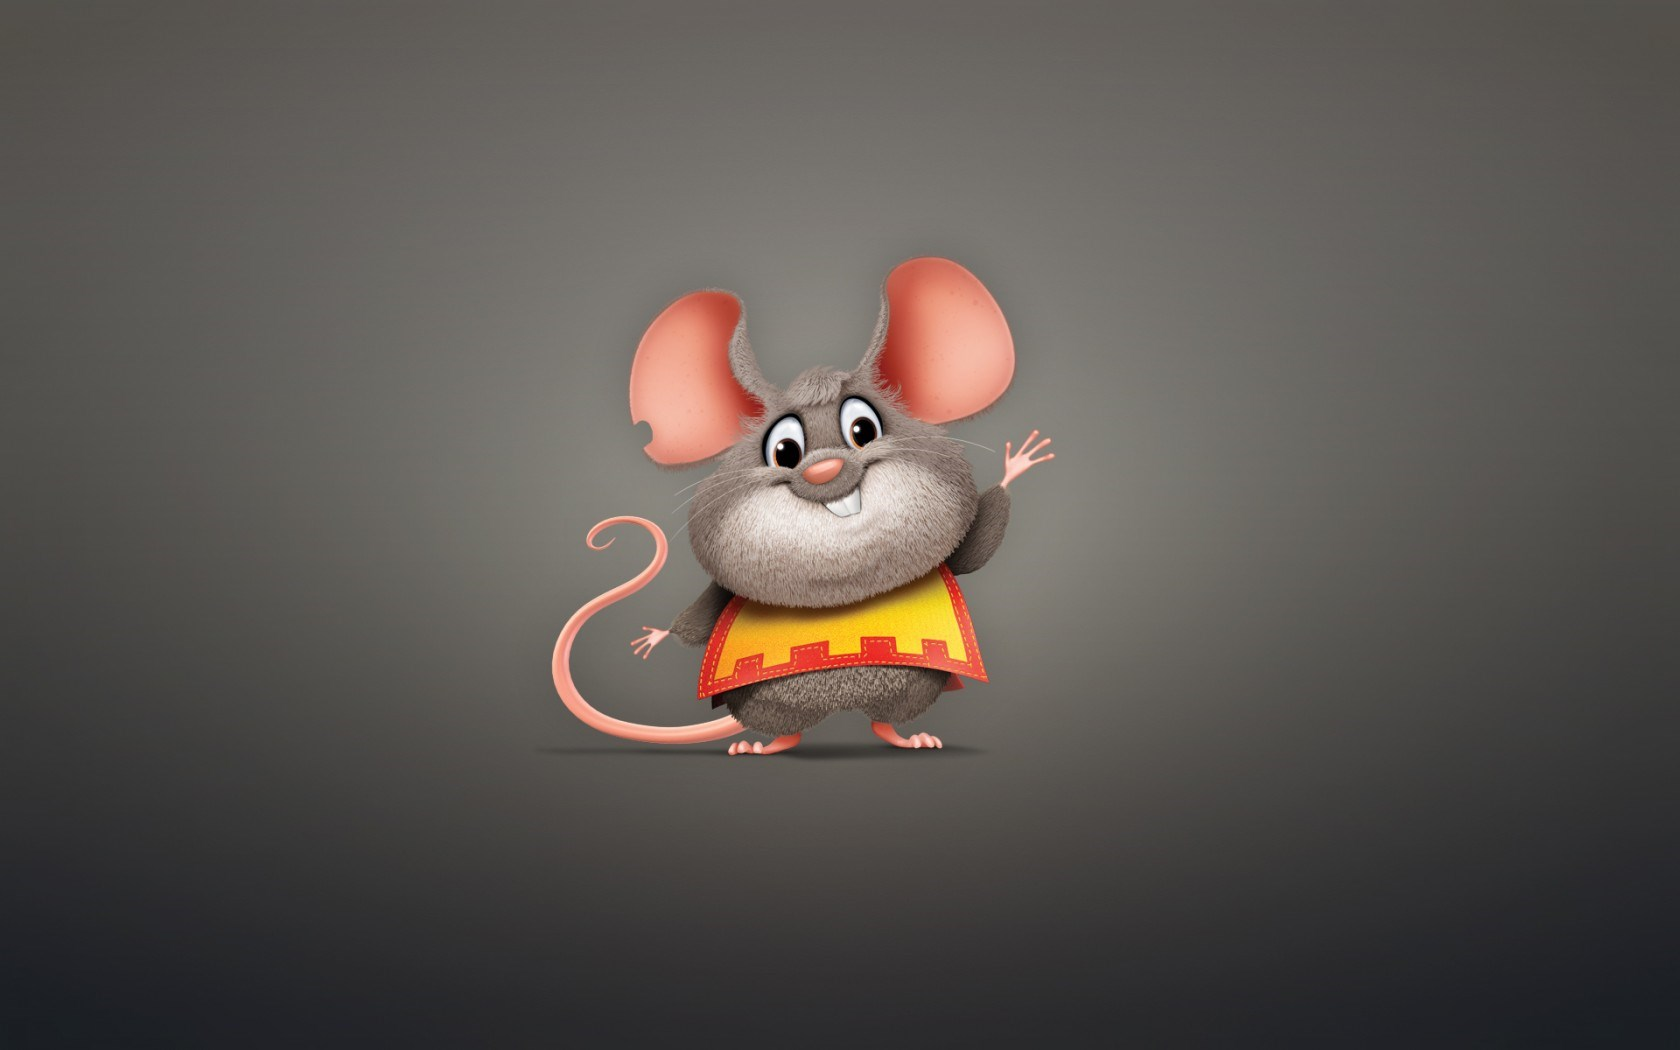 Mouse Rodent Animal Plump Minimalism Cartoon